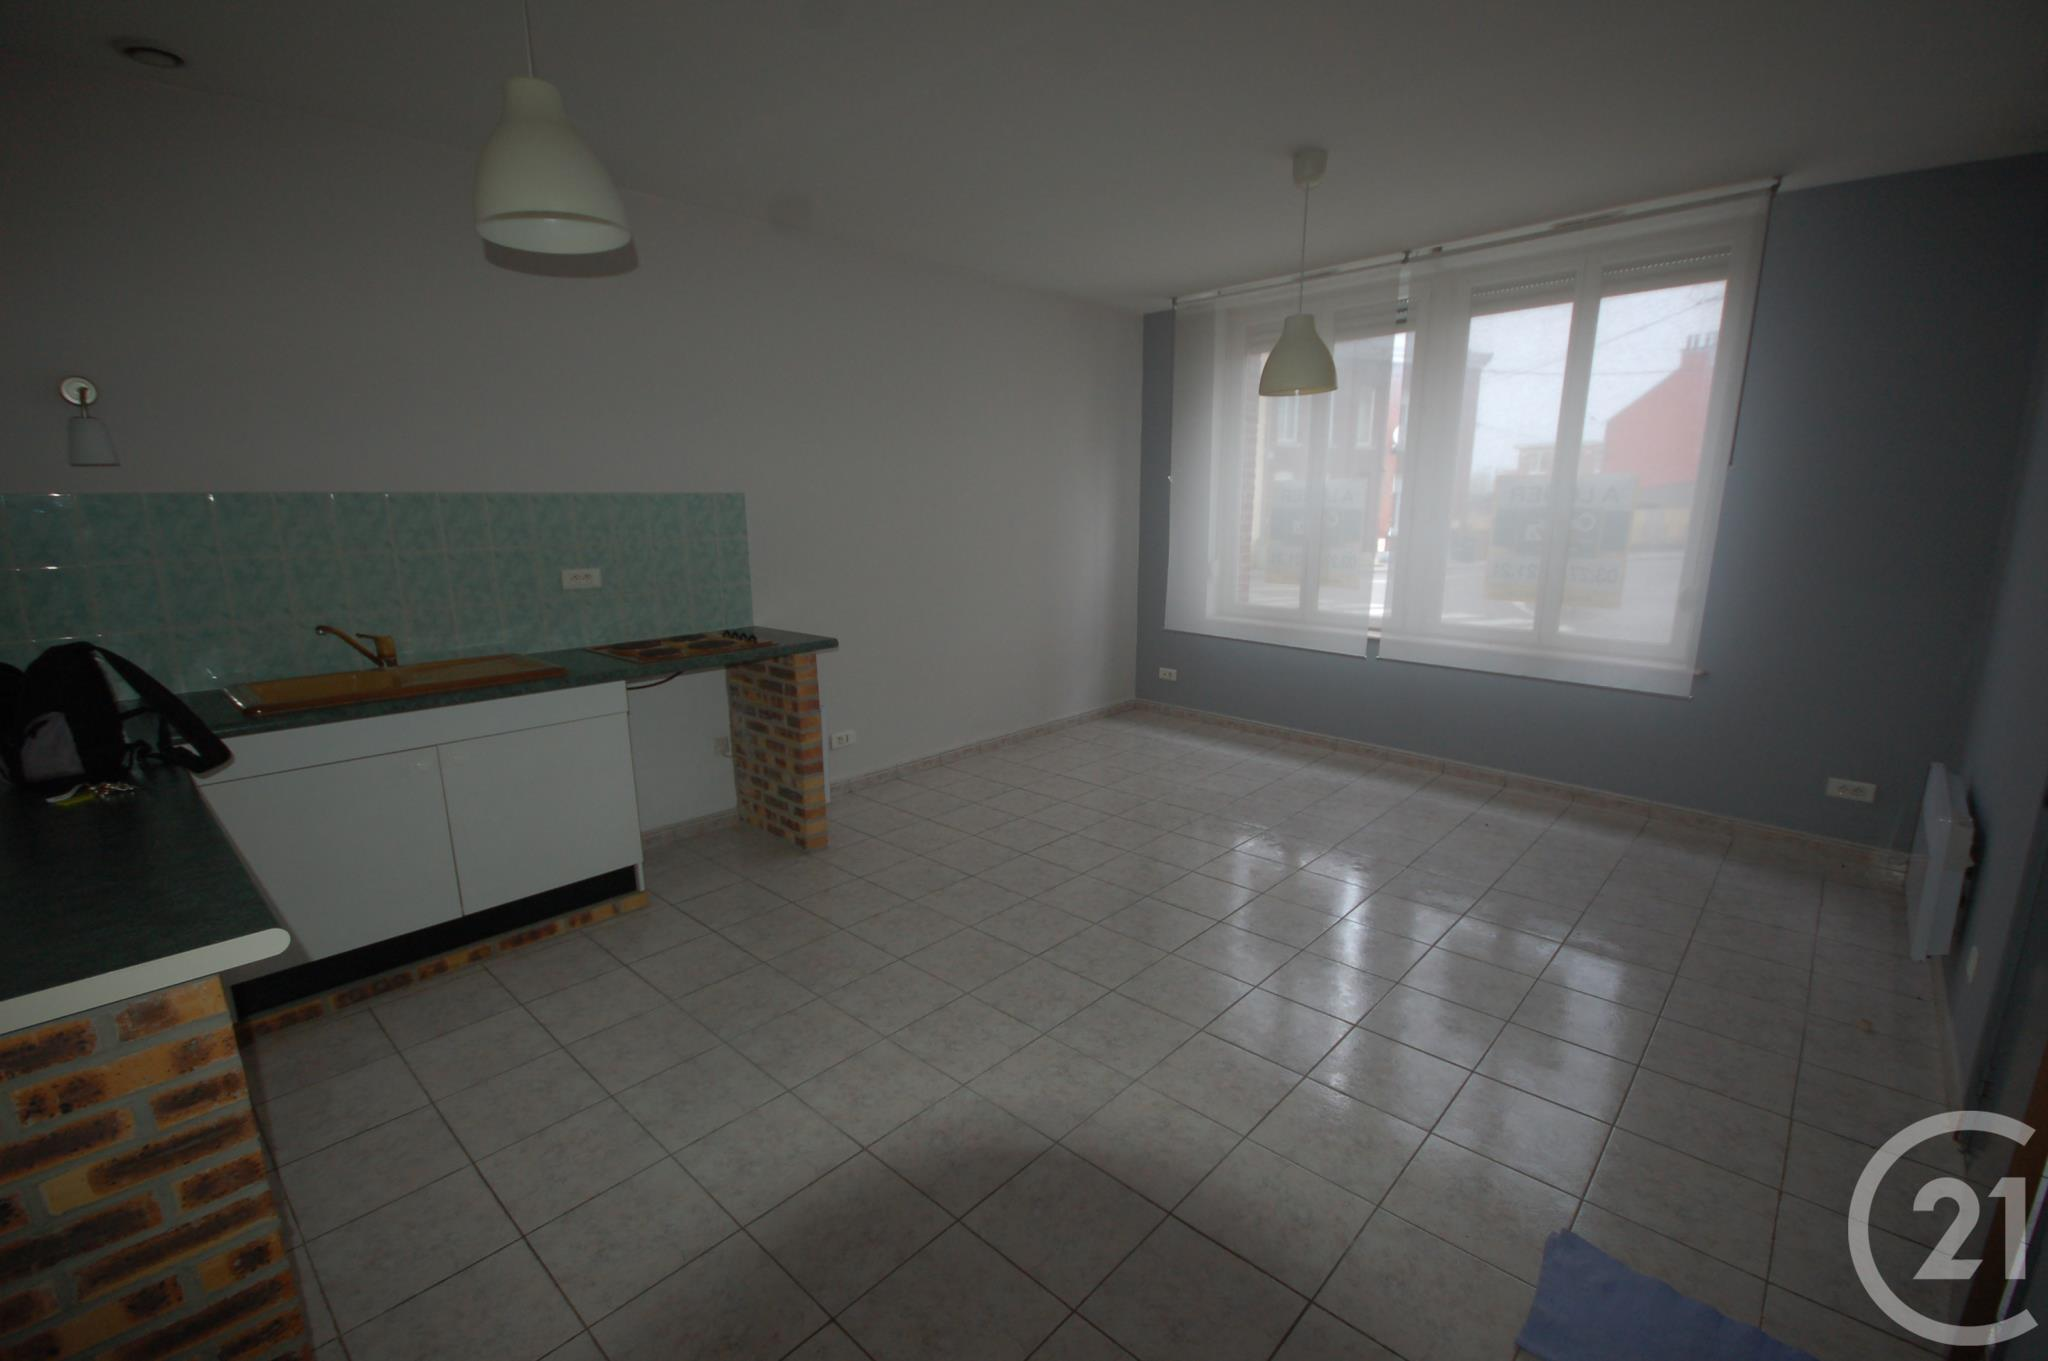 Appartement f2 2 pi ces louer maubeuge 59600 ref for Location appartement f2